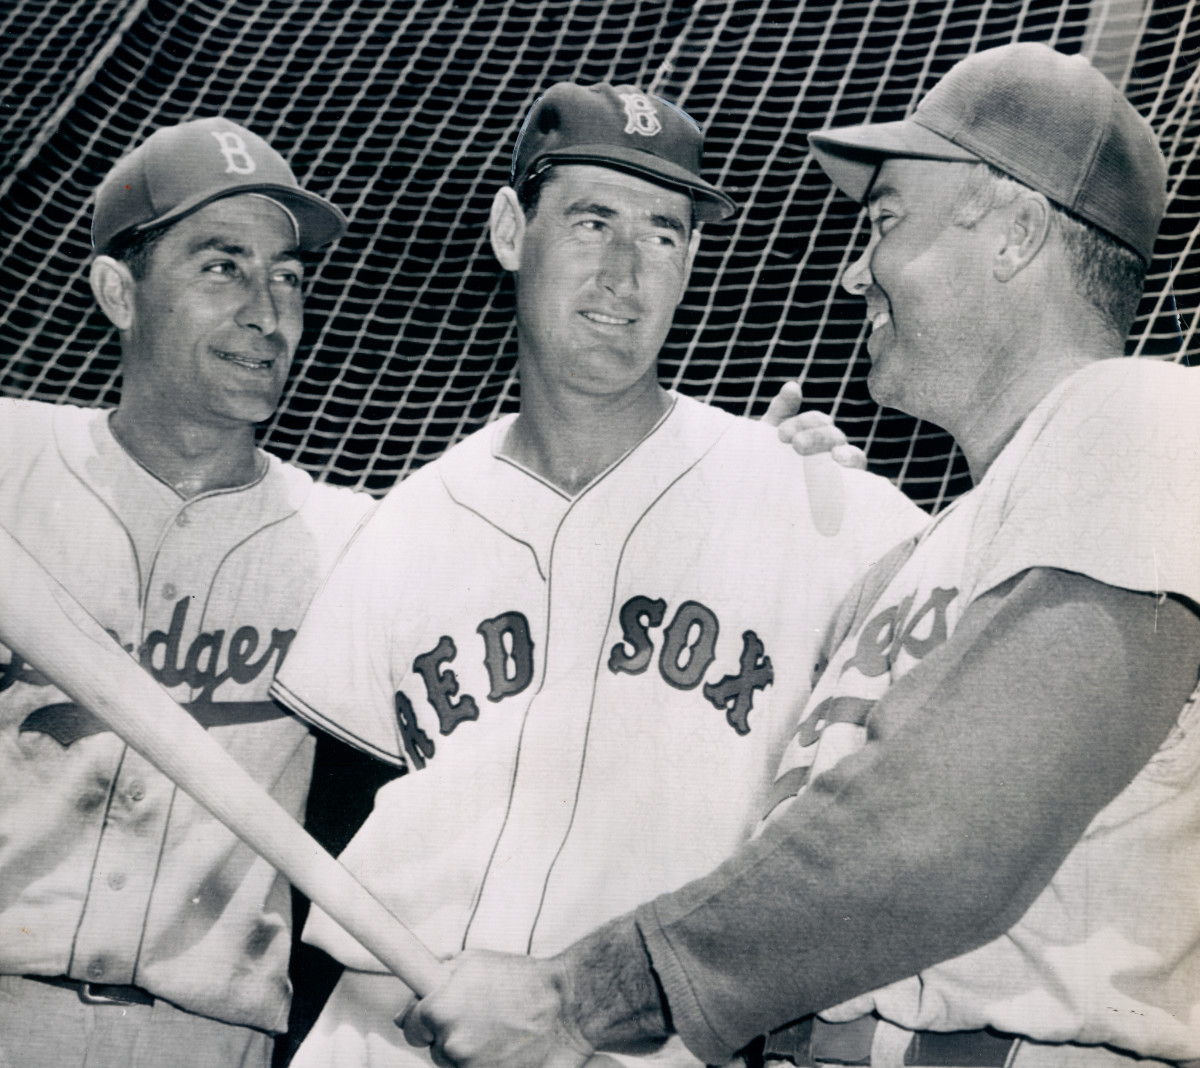 ted williams and duke snider.jpg